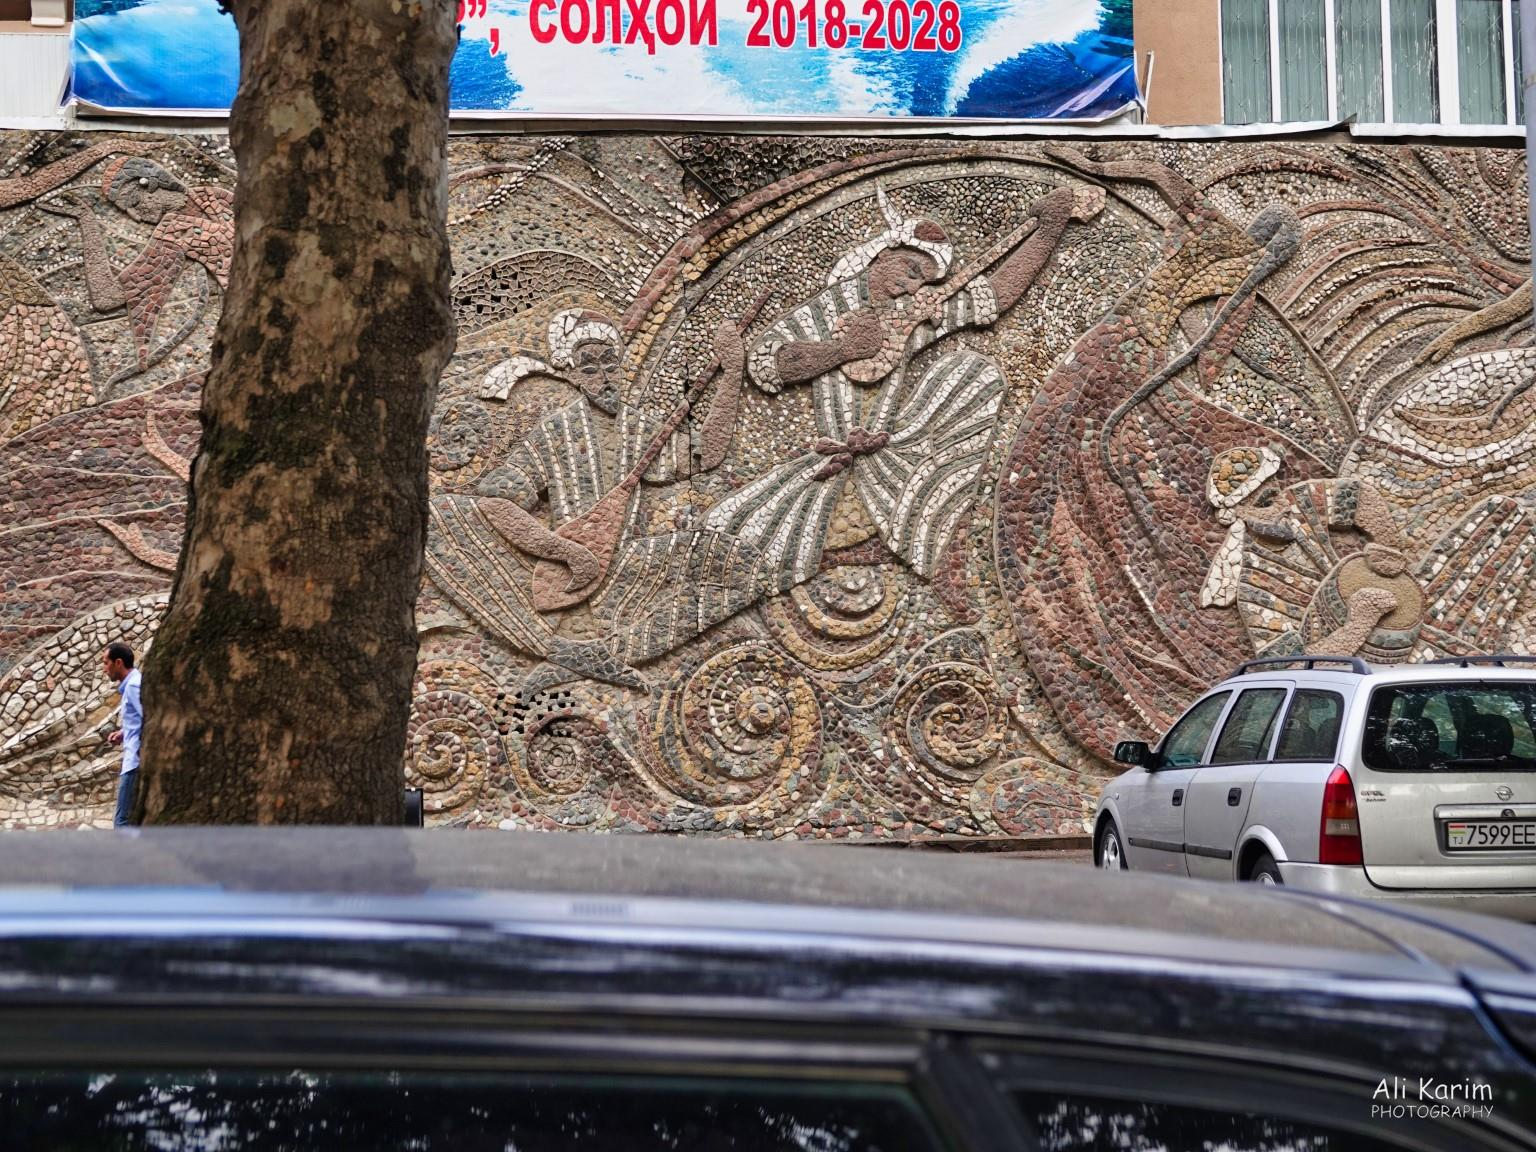 More Dushanbe, Tajikistan Interesting 3D mural on a city wall